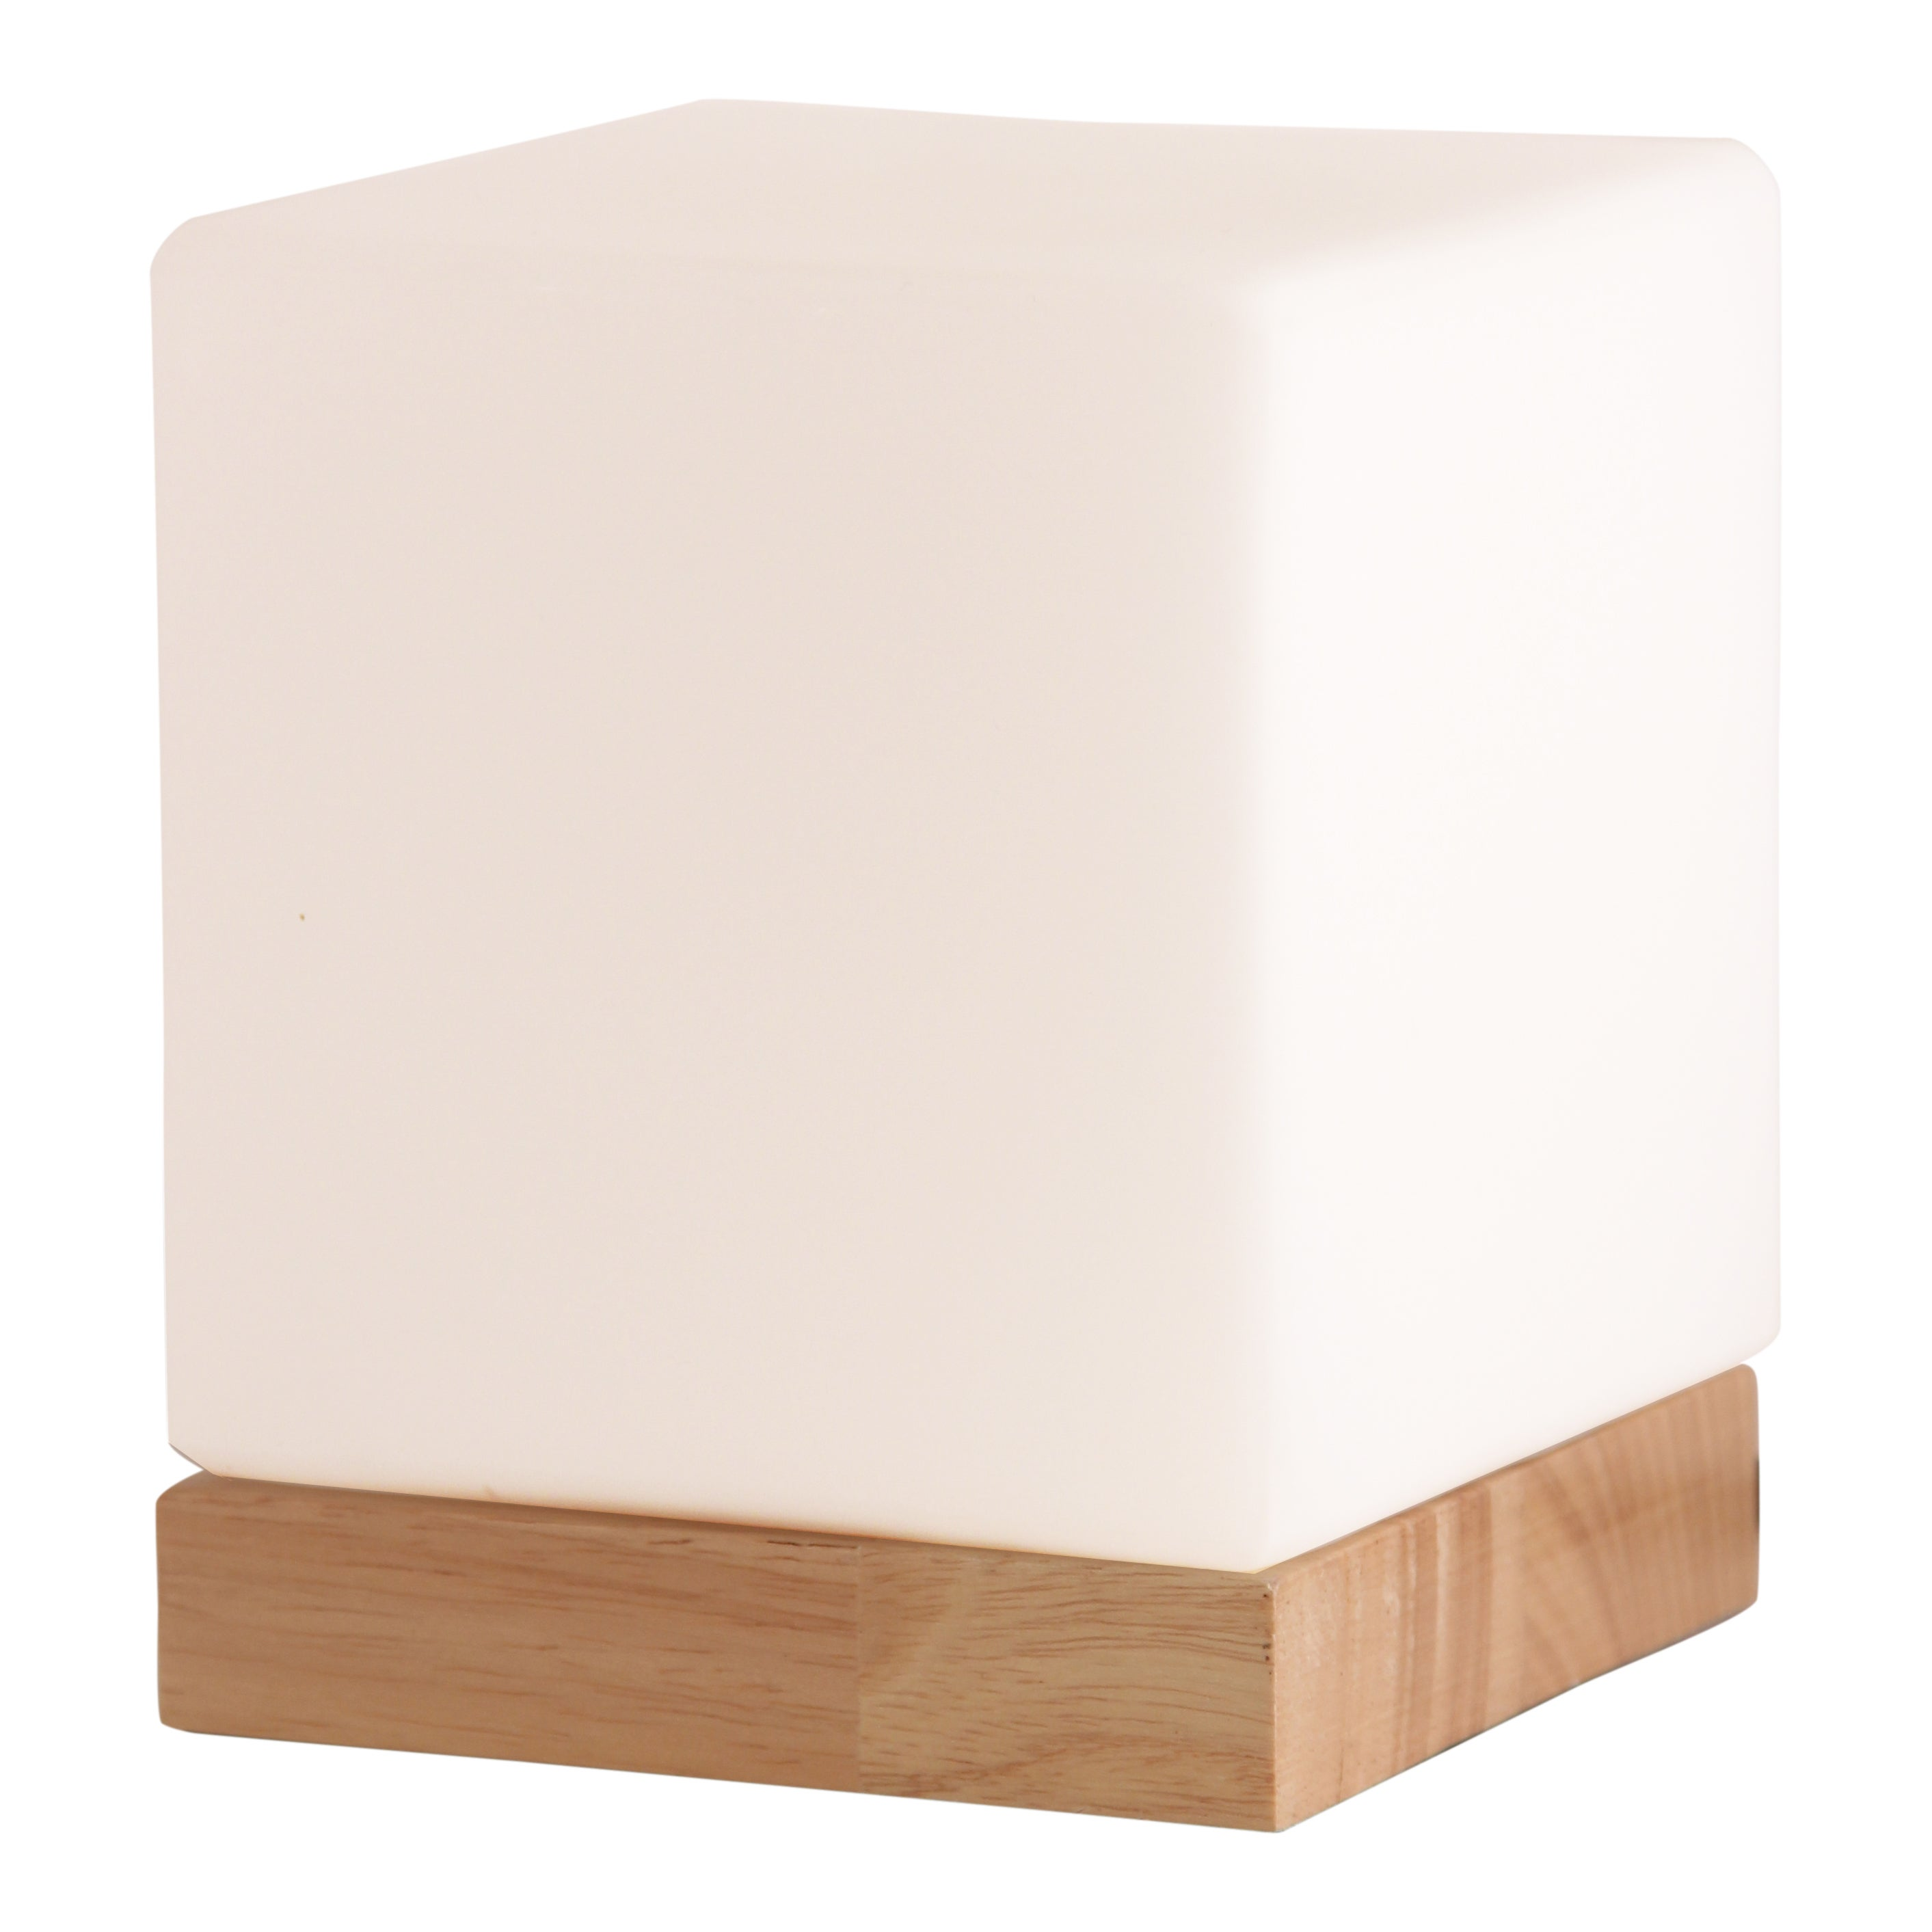 Shop Light Accents Small Table Lamp Cube Accent Lamp Glass Shade With  Natural Wooden Base   Free Shipping On Orders Over $45   Overstock.com    14745536